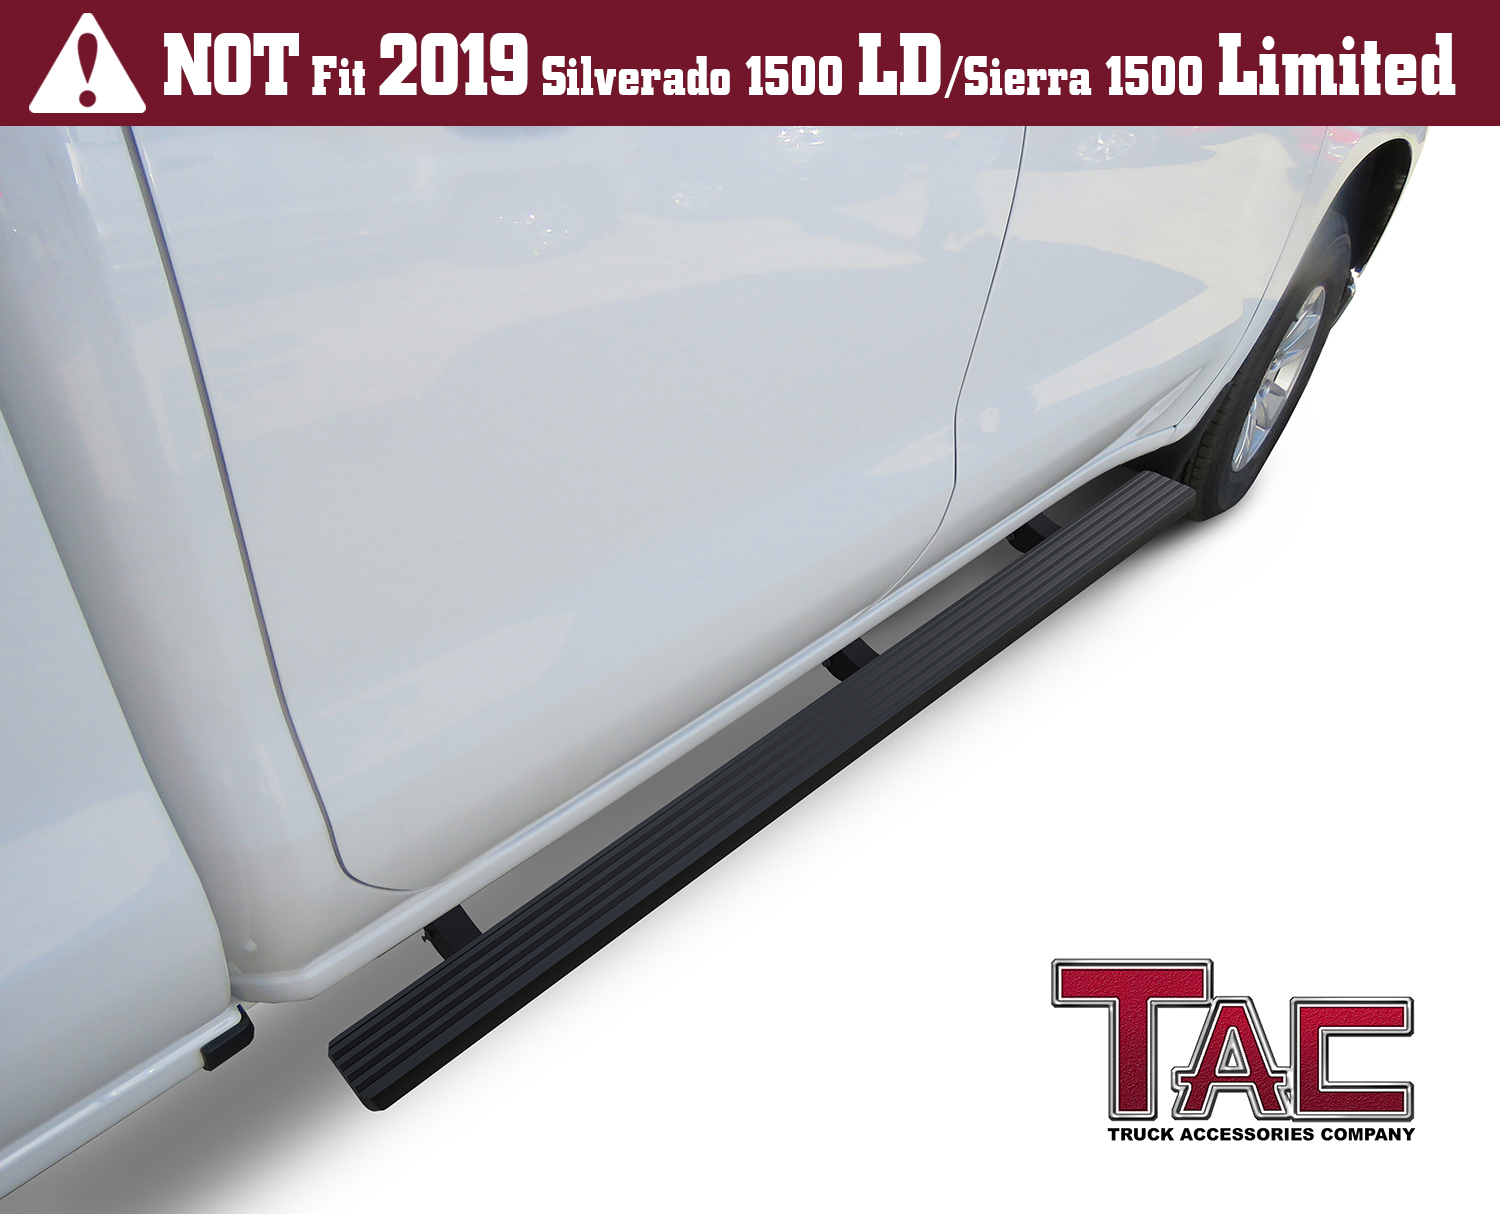 TAC Side Steps Running Boards Fit 2019 Chevy Silverado//GMC Sierra 1500 2020 Silverado//Sierra 2500 3500 Crew Cab Truck Pickup 3 Black Side Bars Step Rails Nerf Bars Off Road Accessories 2 pcs